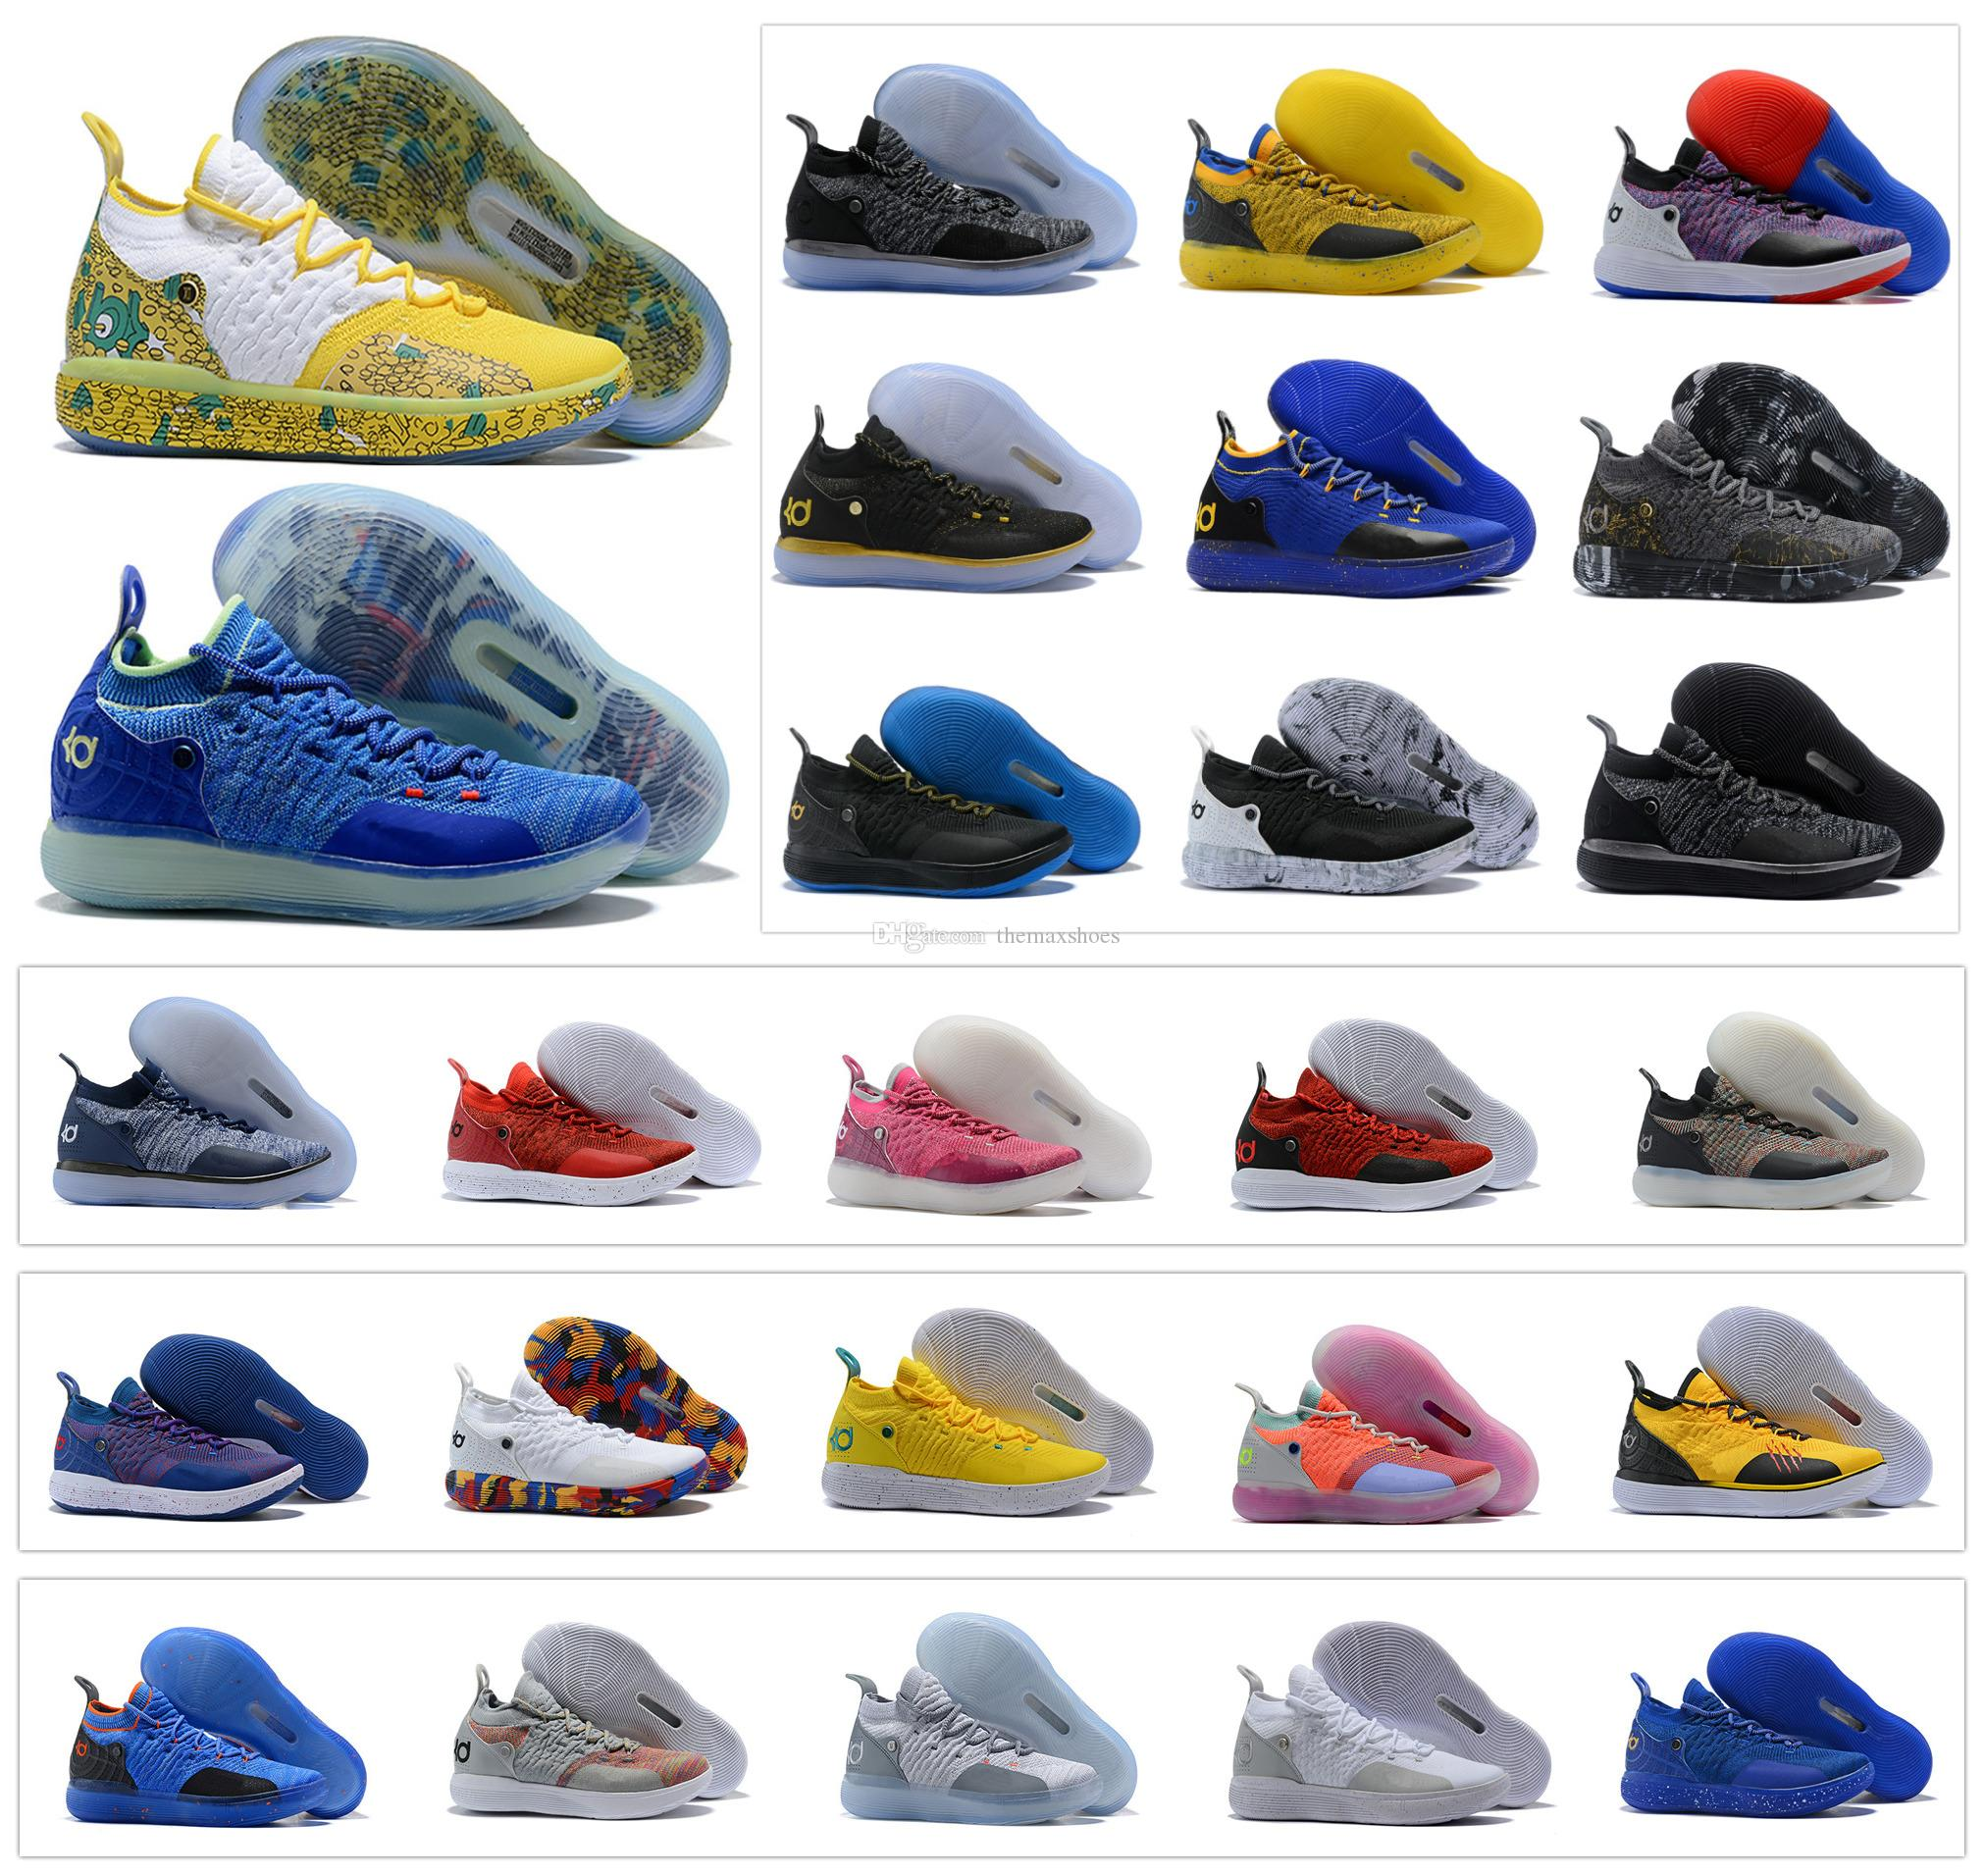 8a2f1c76600 Hot Zoom Kevin Durant KD 11 Multi Color KD11 11S Numbers BHM Igloo Men  Anniversary University Basketball Shoes X Elite Mid Sport Sneakers Shoes  Sneakers ...